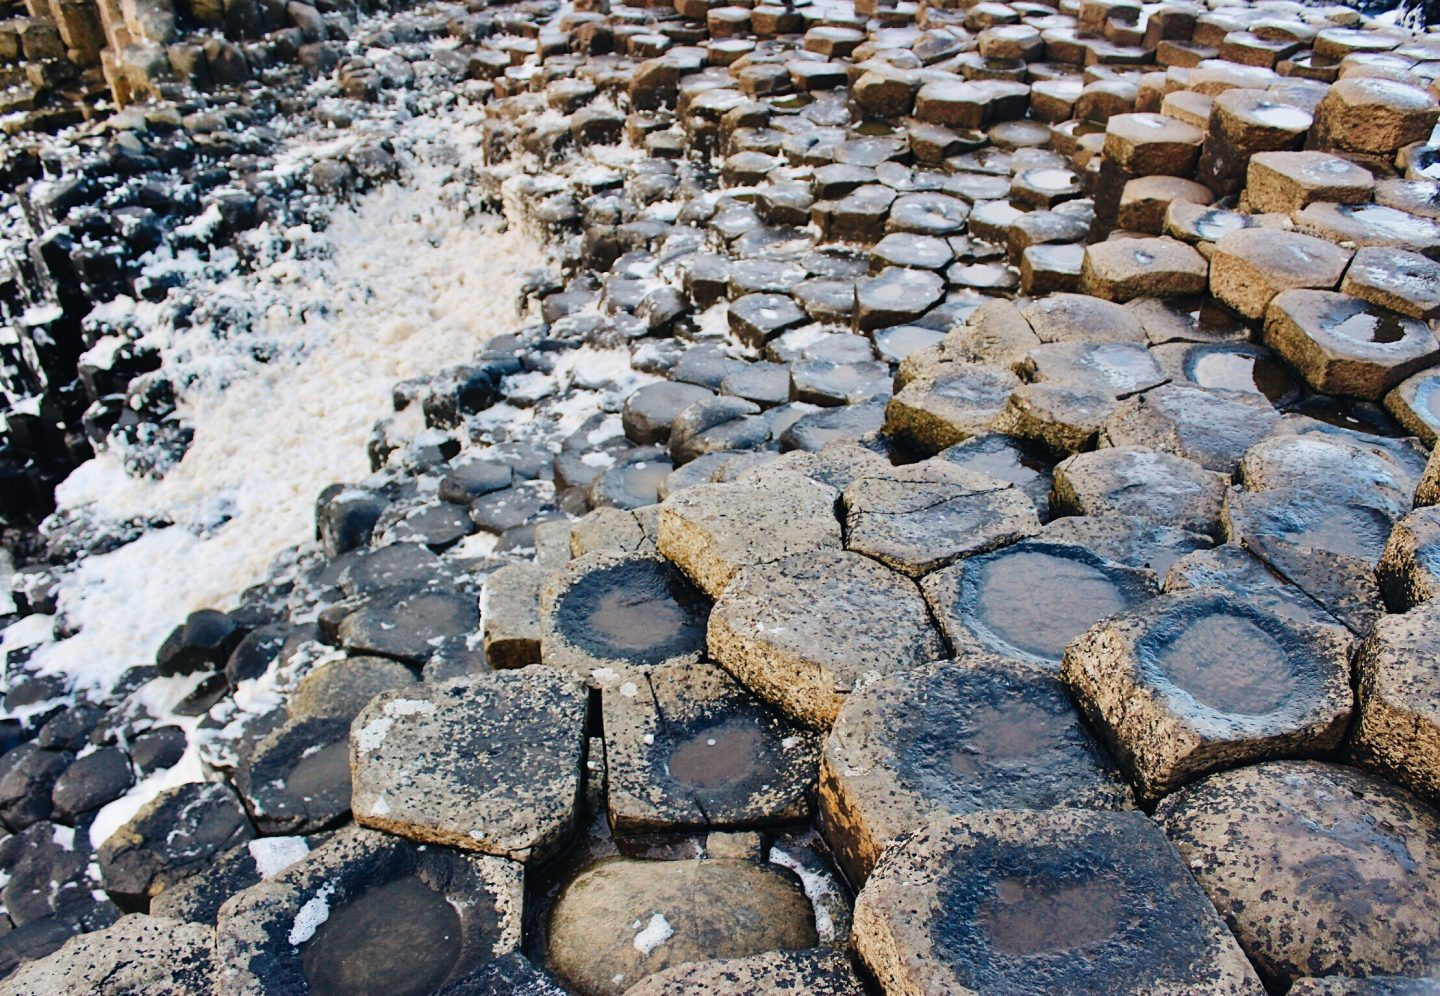 The rock formations of Giant's Causeway in Northern Ireland!